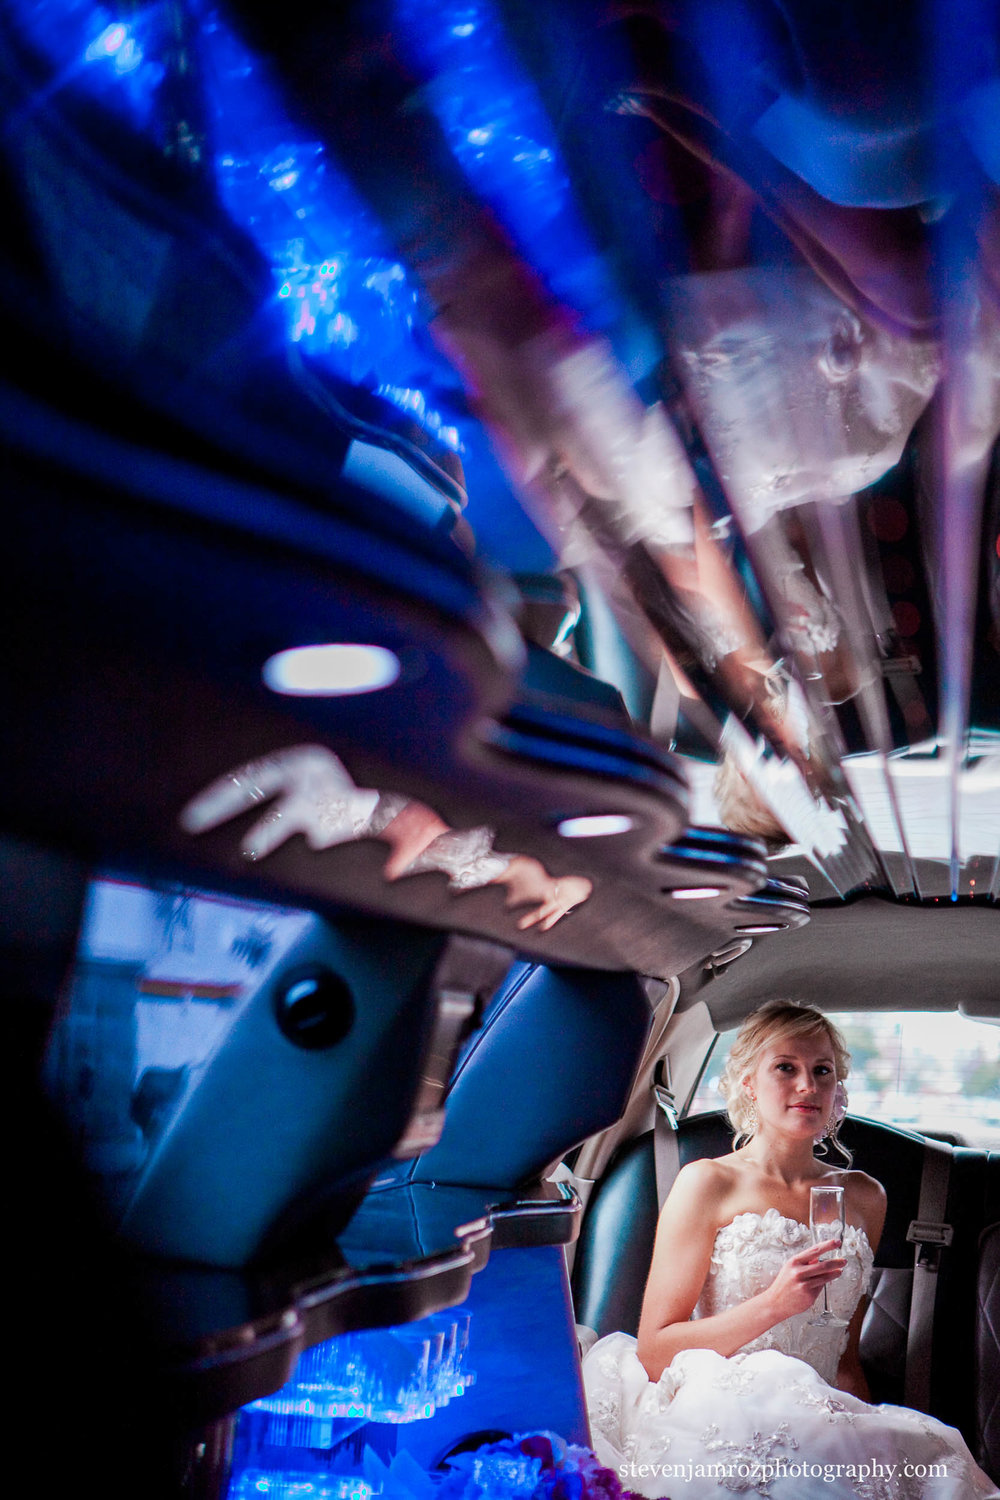 raleigh-bride-in-limo-rental-photography-0888.jpg